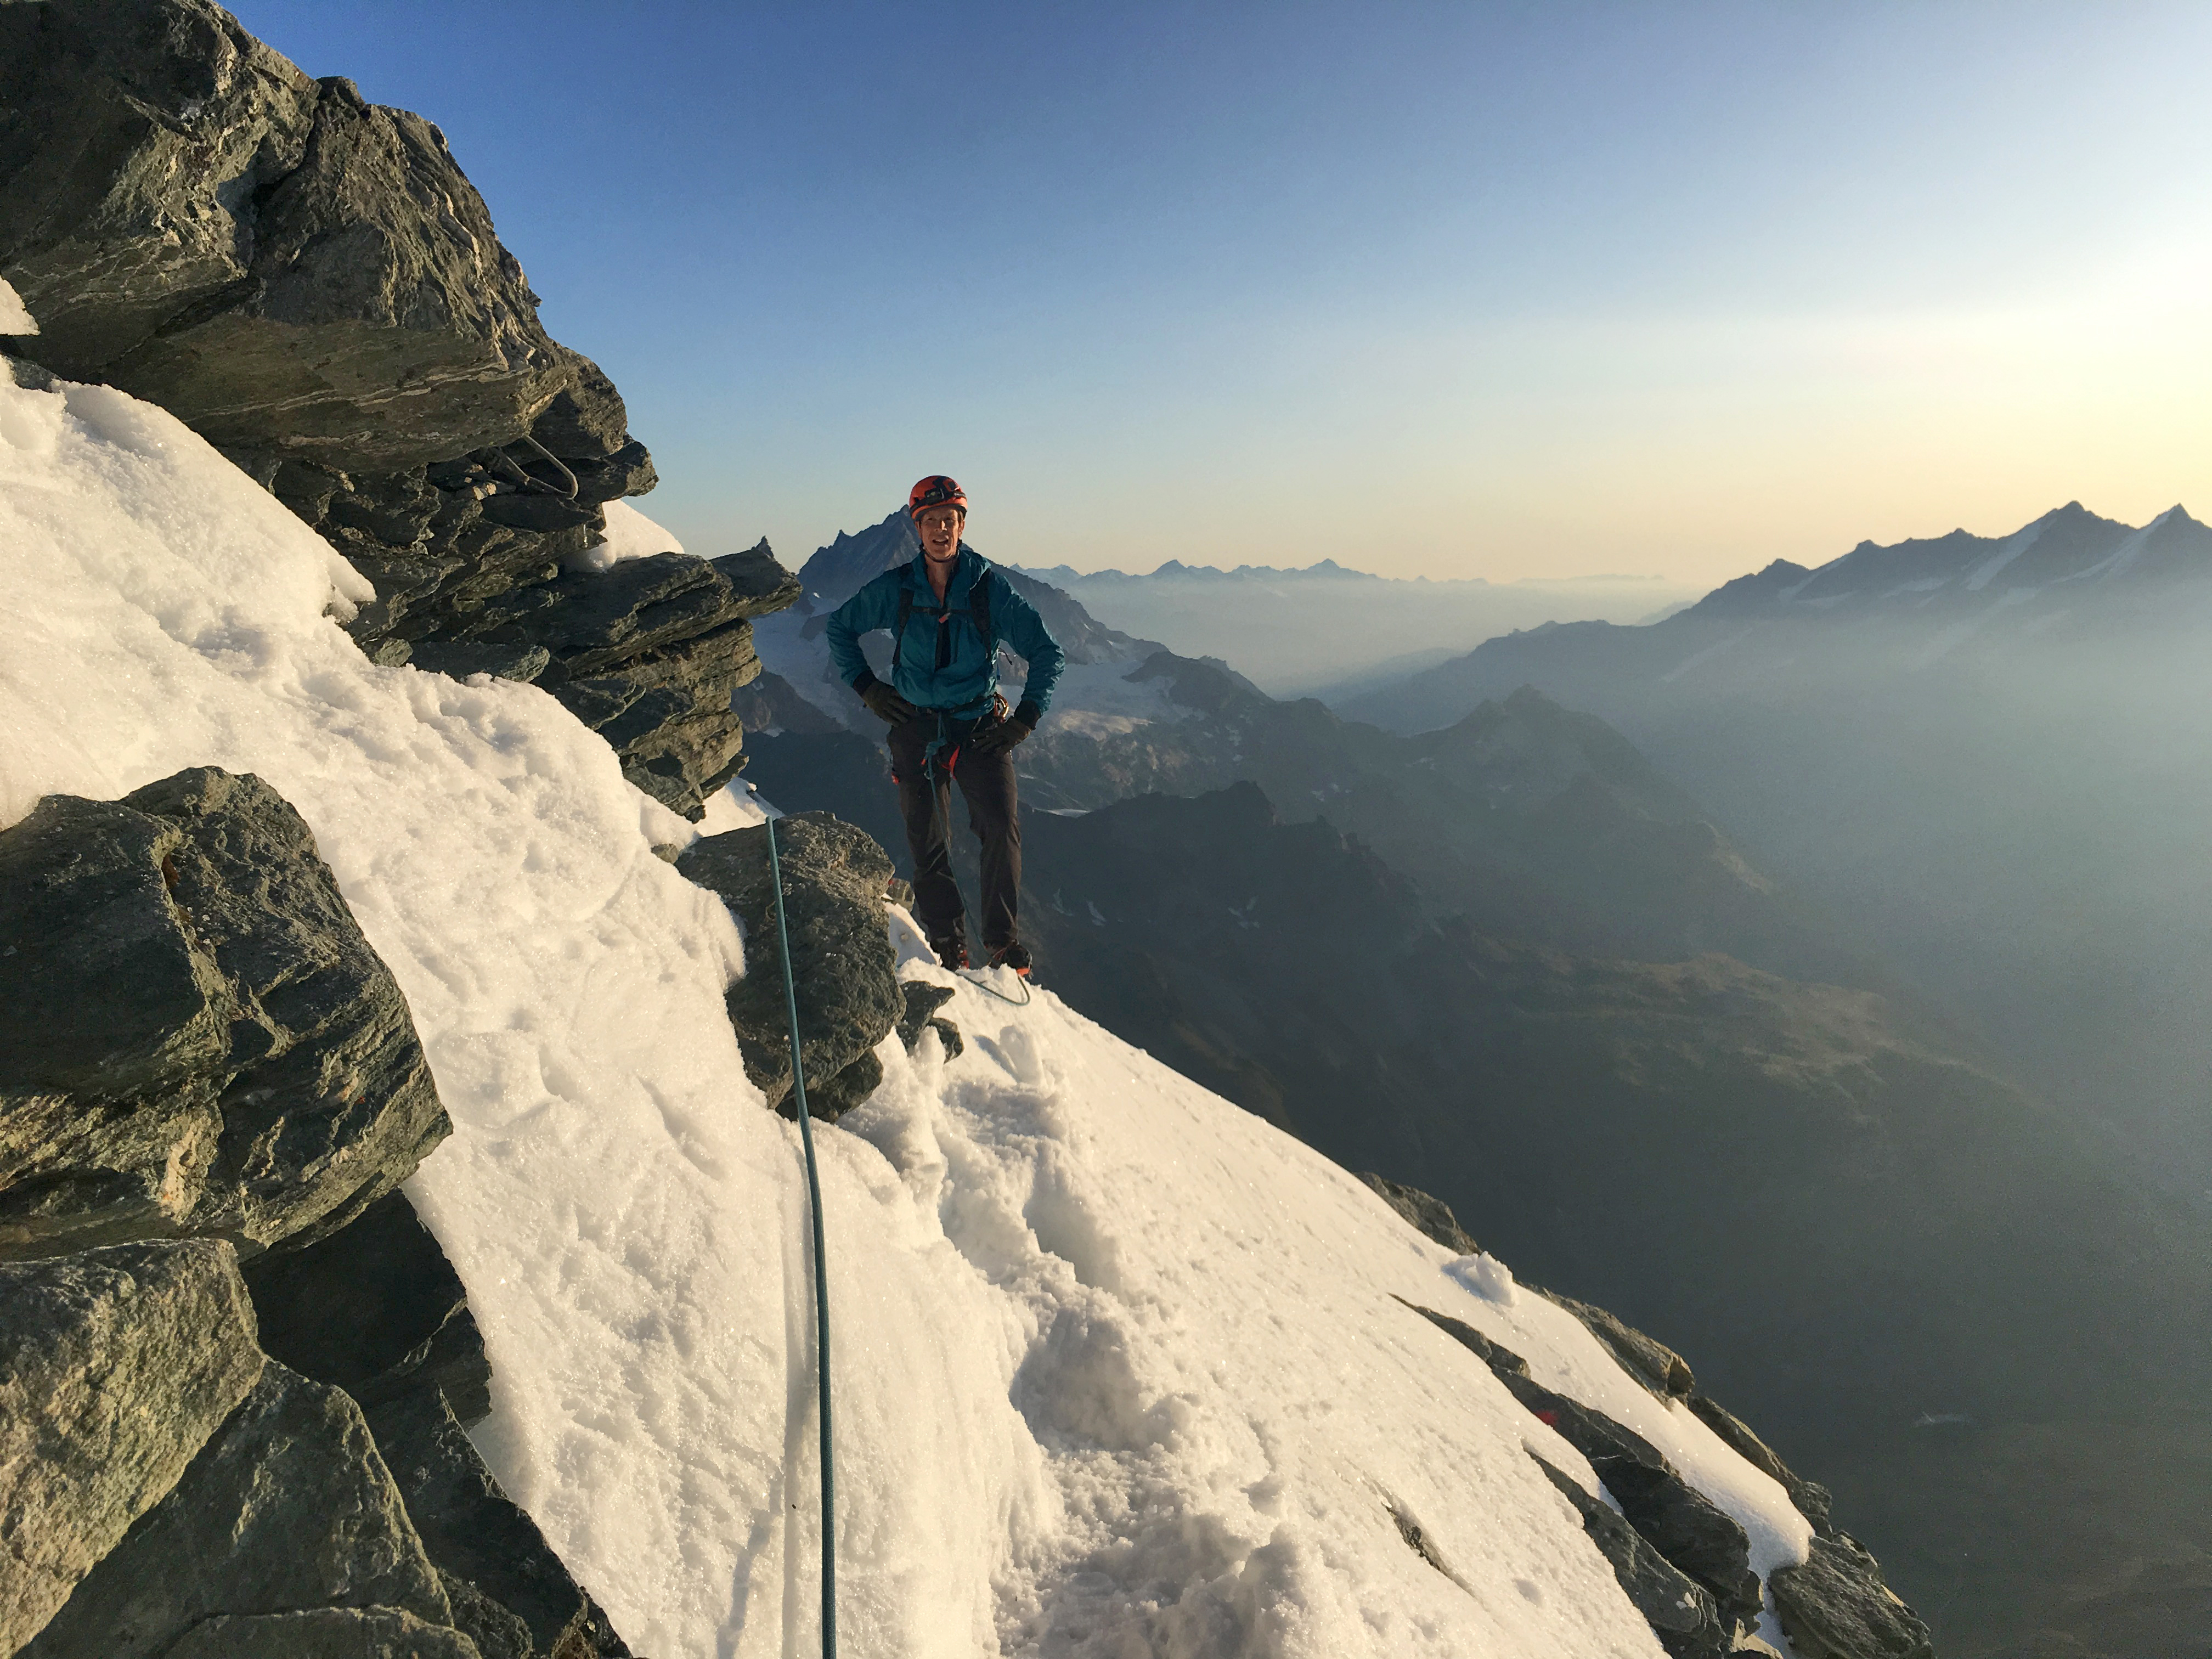 Sean Milbank on matterhorn edge